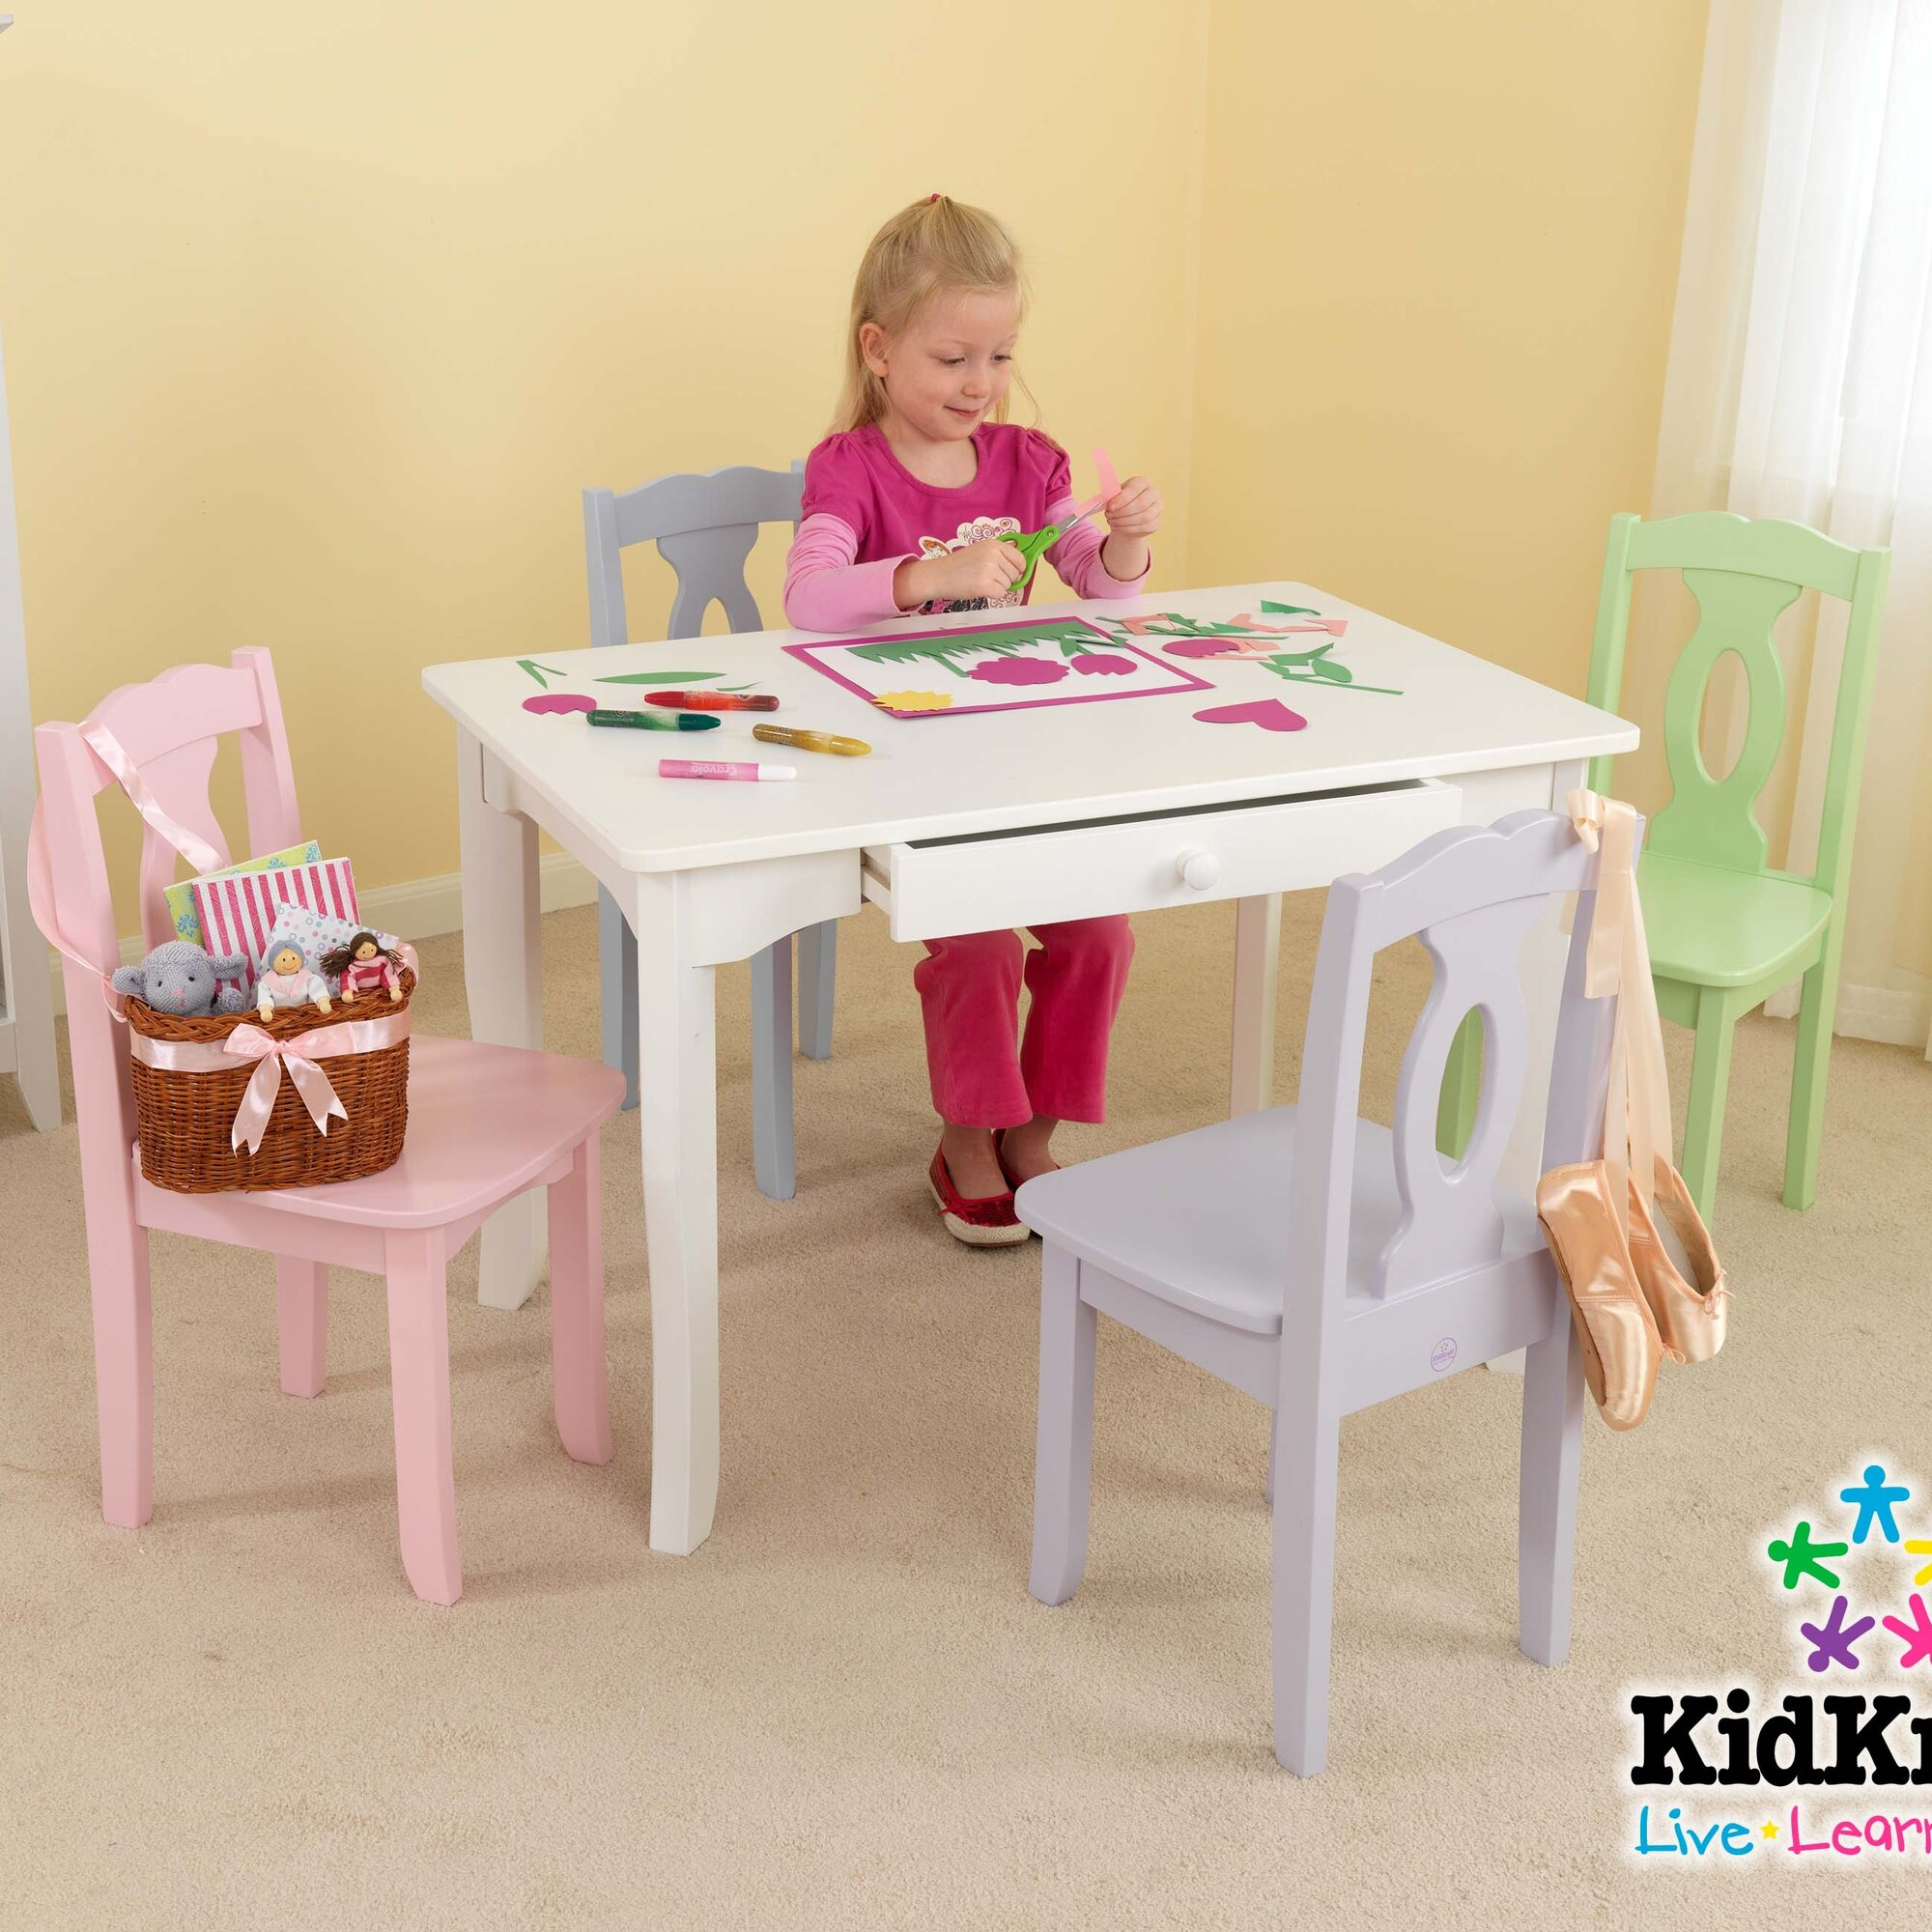 Childrens Table And Chair Sets WebNuggetzcom